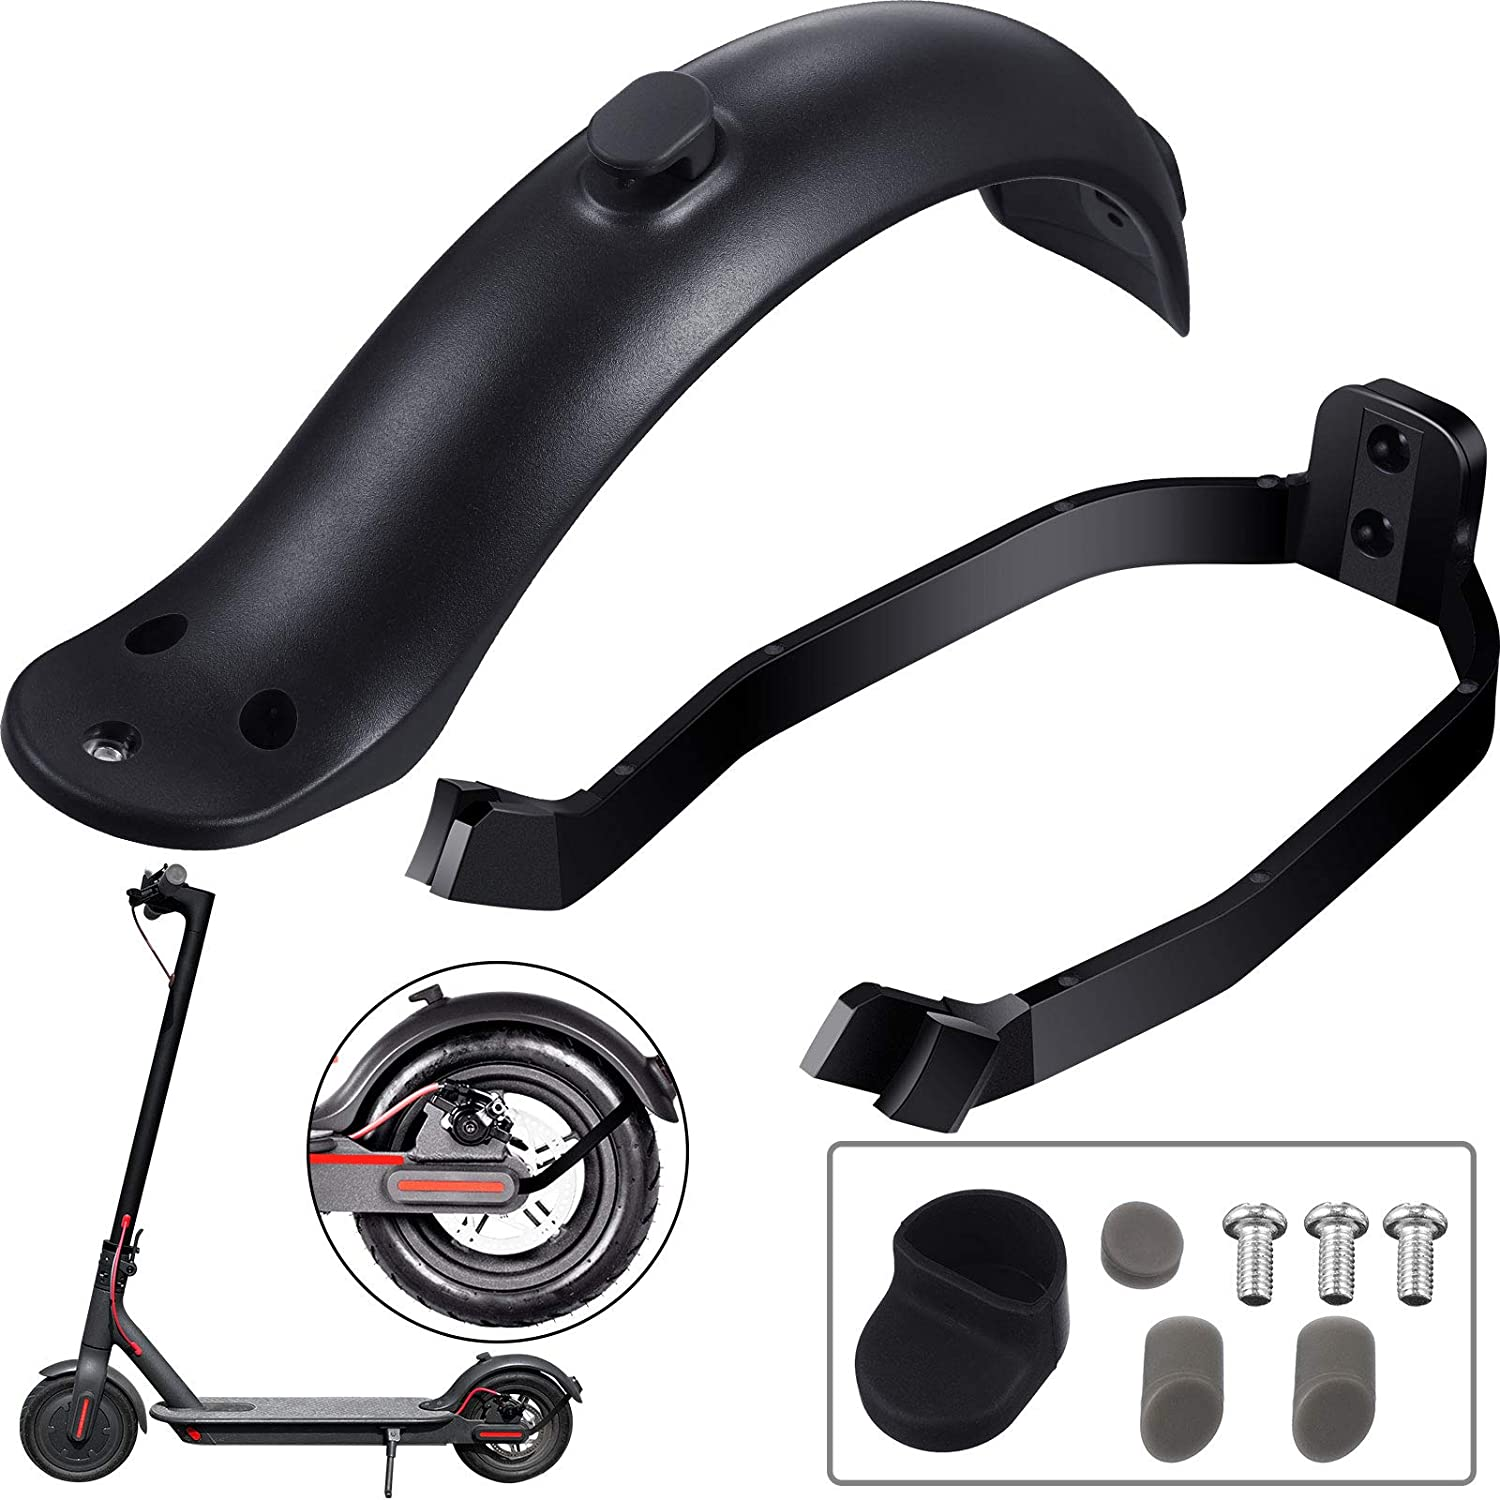 Fender Support for Xiaomi M365//M365 Pro Scooter Rear Mudguard Accessories L/&6